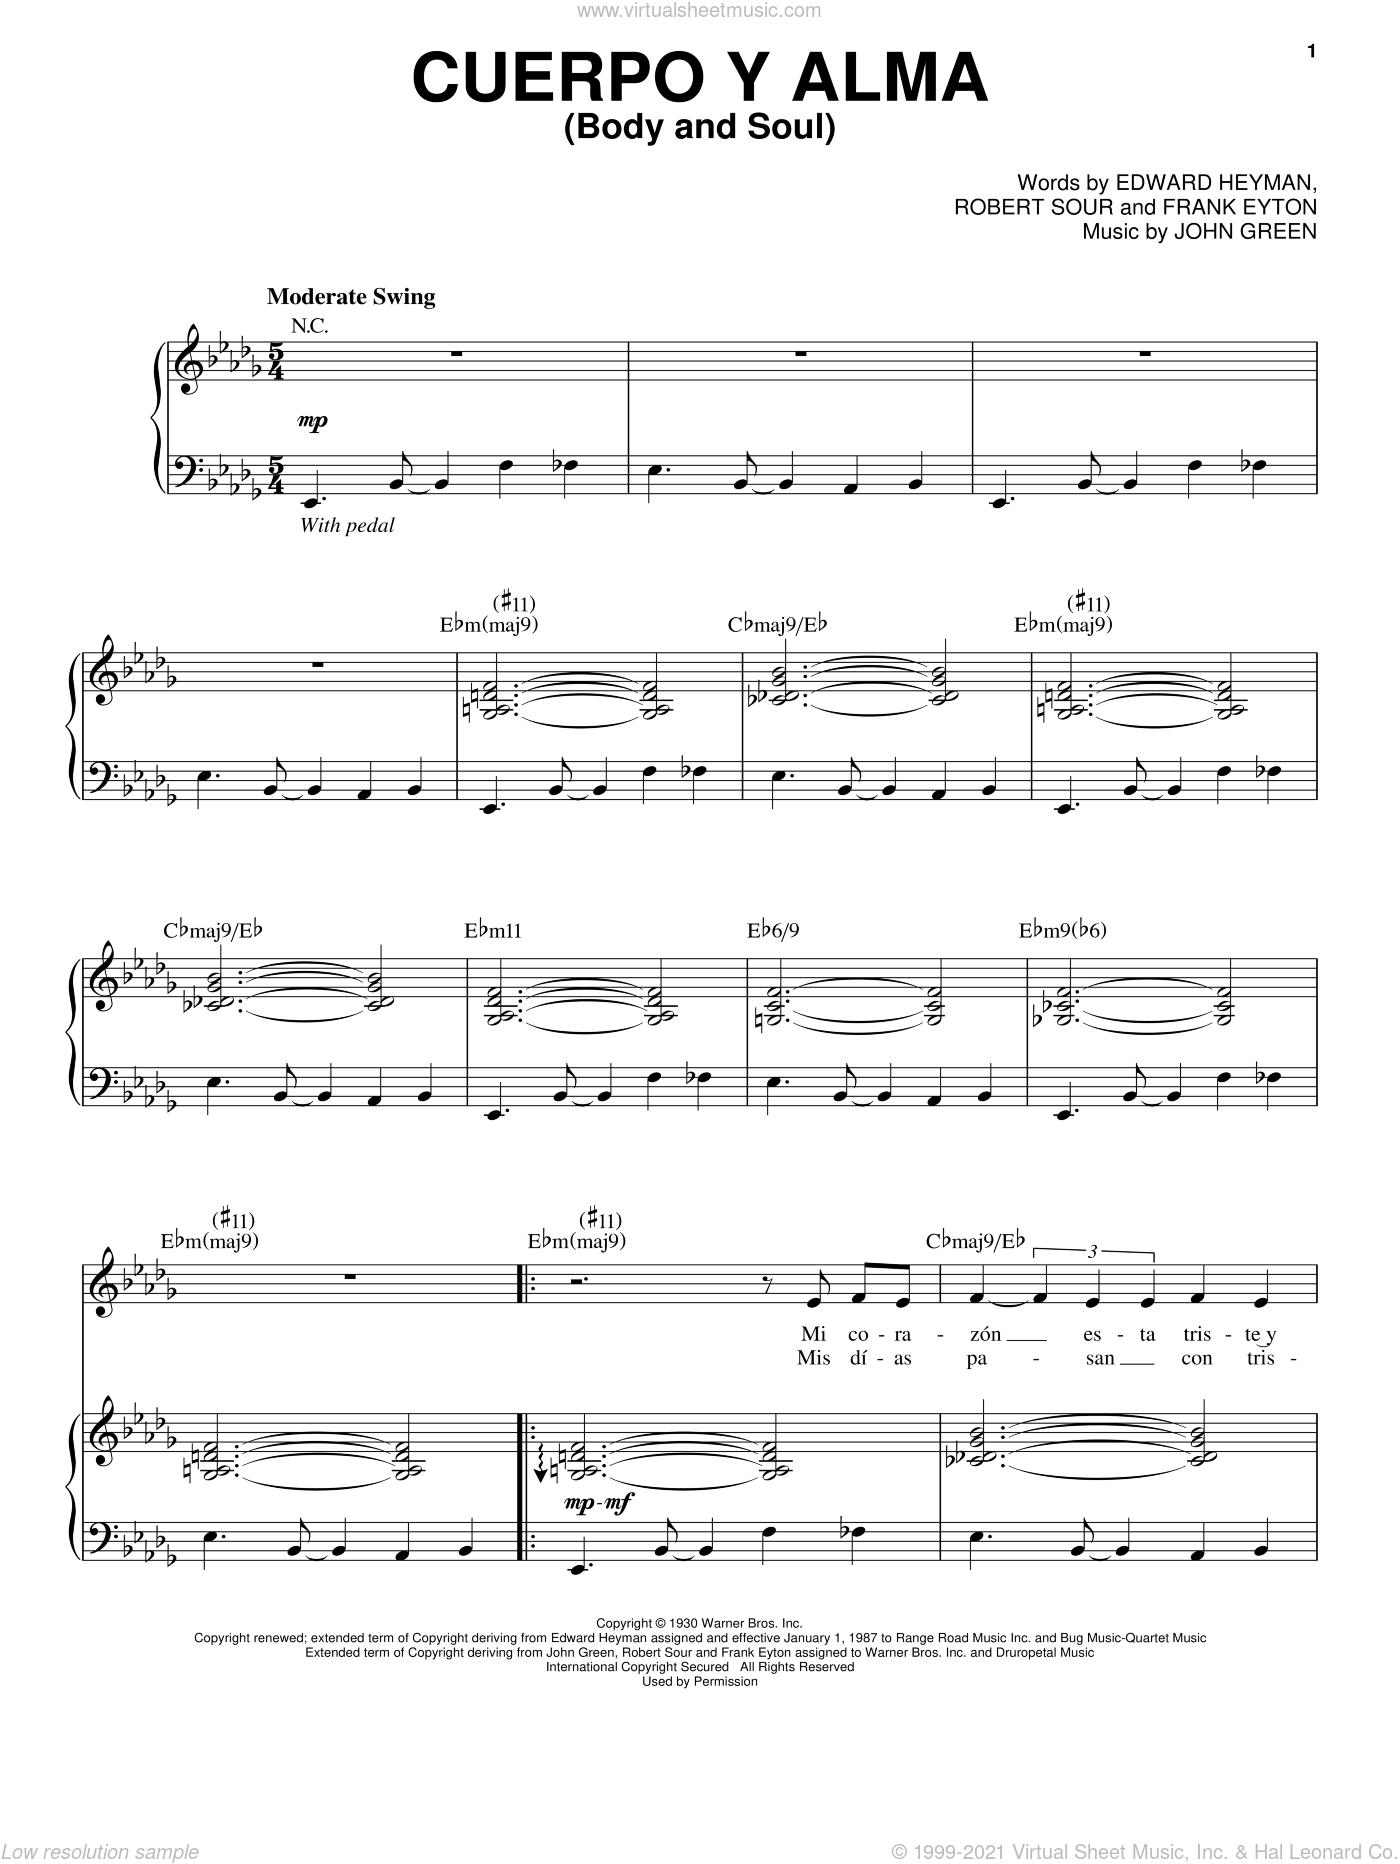 Cuerpo Y Alma (Body And Soul) sheet music for voice and piano by Robert Sour